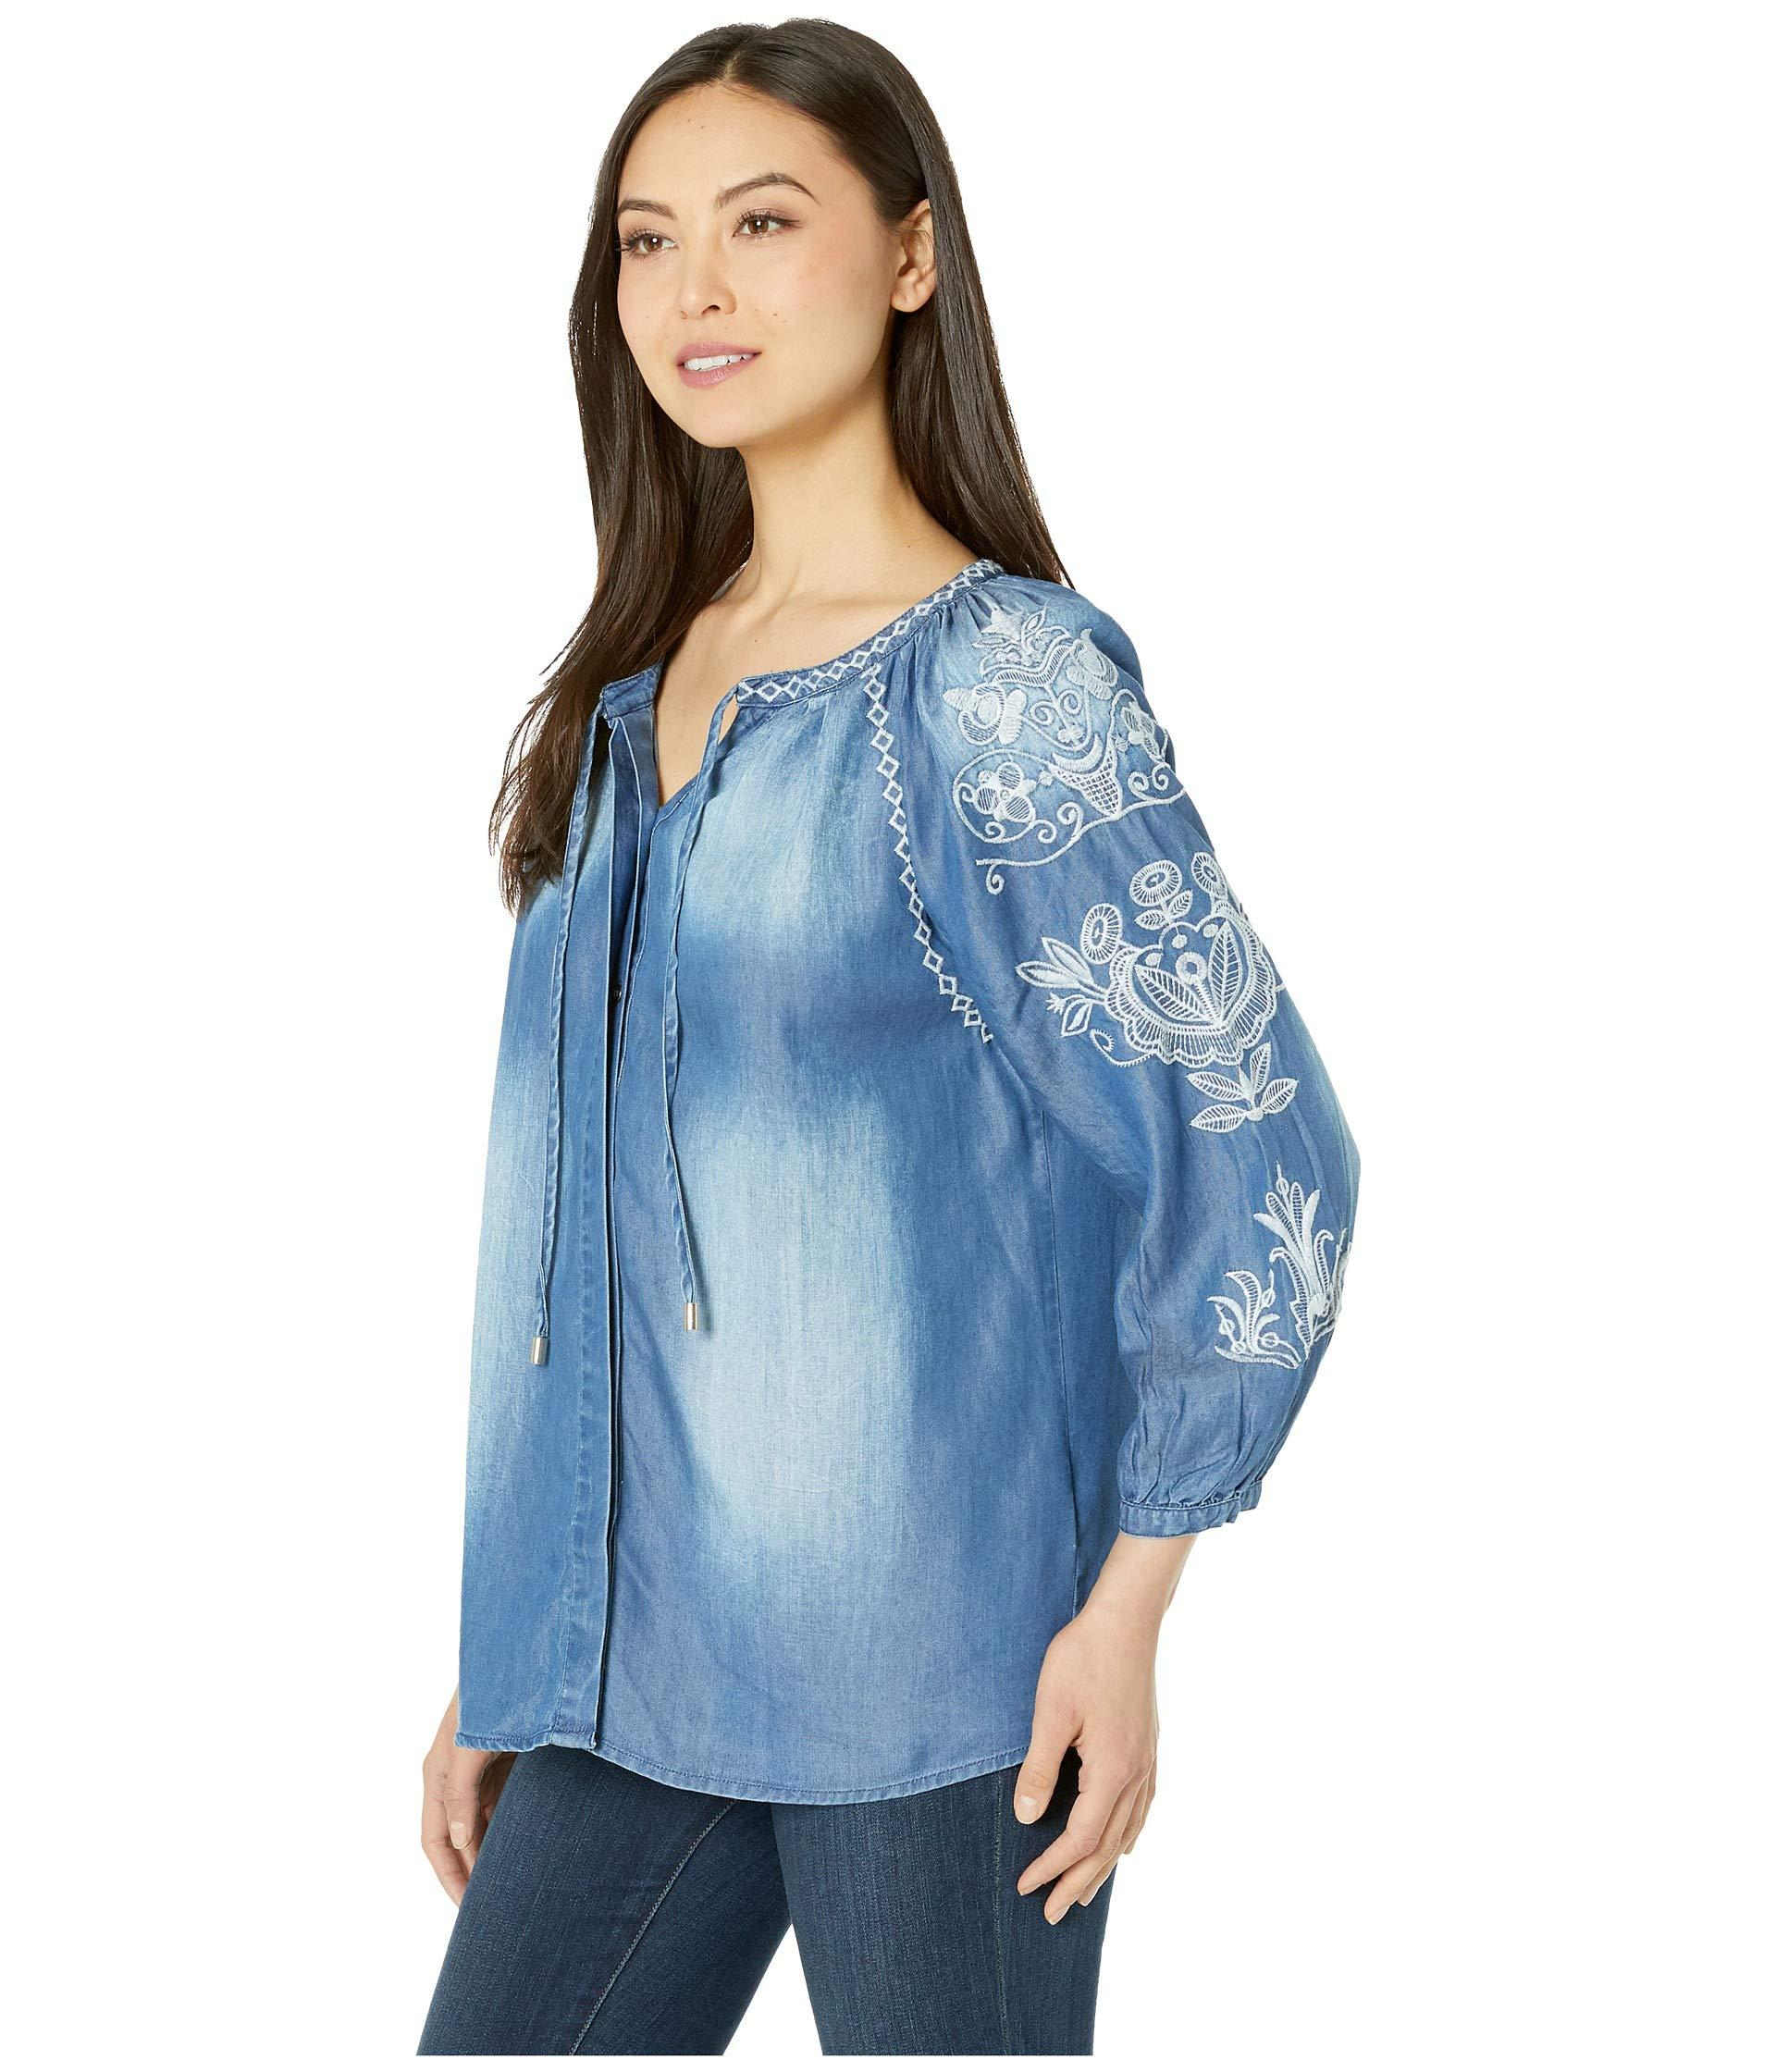 070a60ba Lyst - Wrangler Long Sleeve Drawstring Tie (chambray Blue) Women's Clothing  in Blue